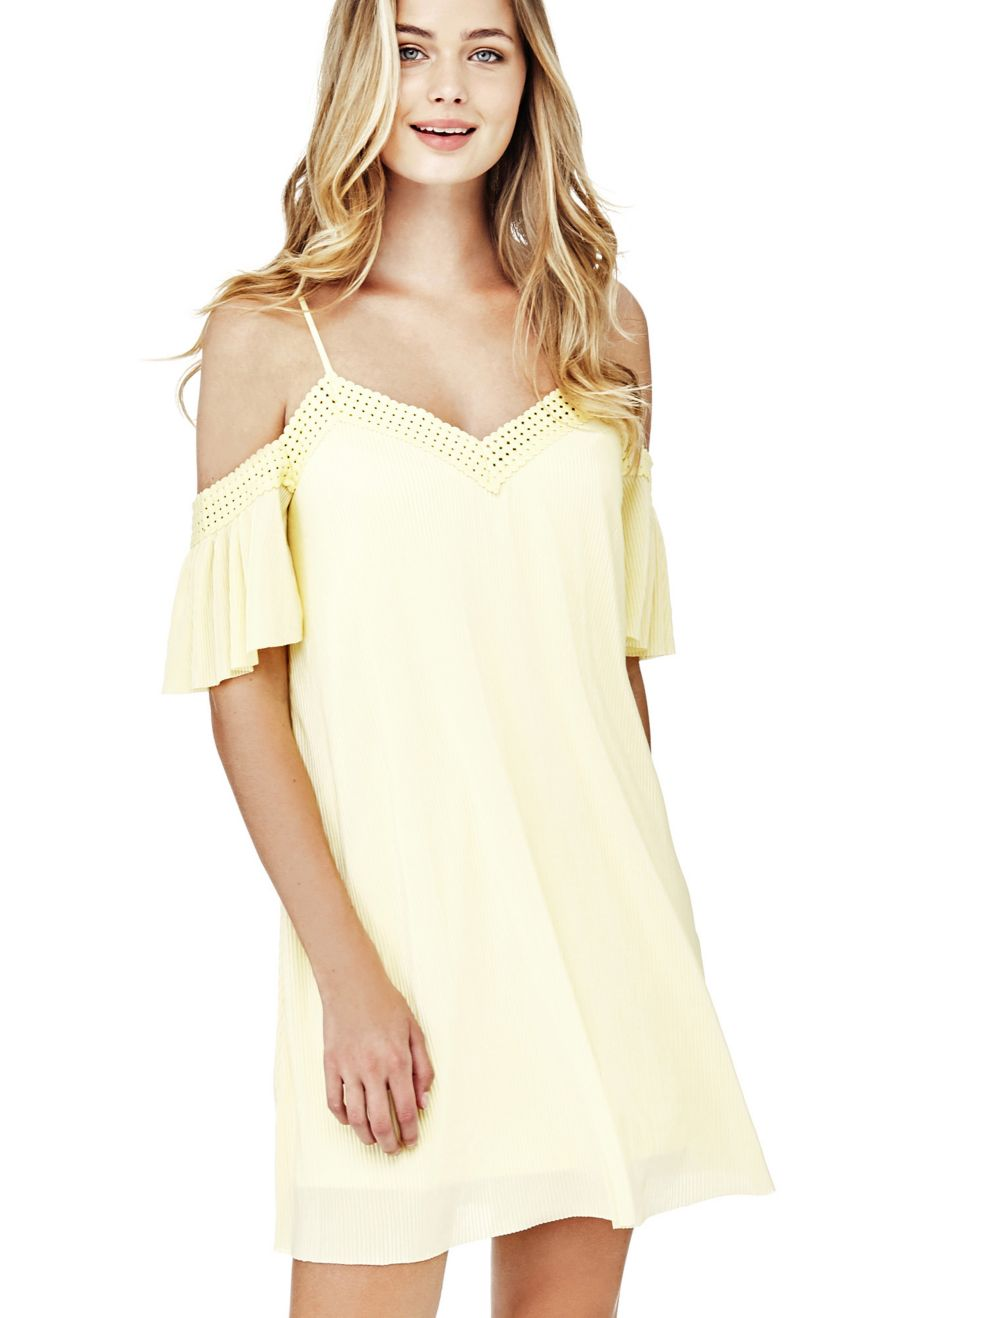 ROBE EPAULES DENUDEES Guess - Robe Femme Guess